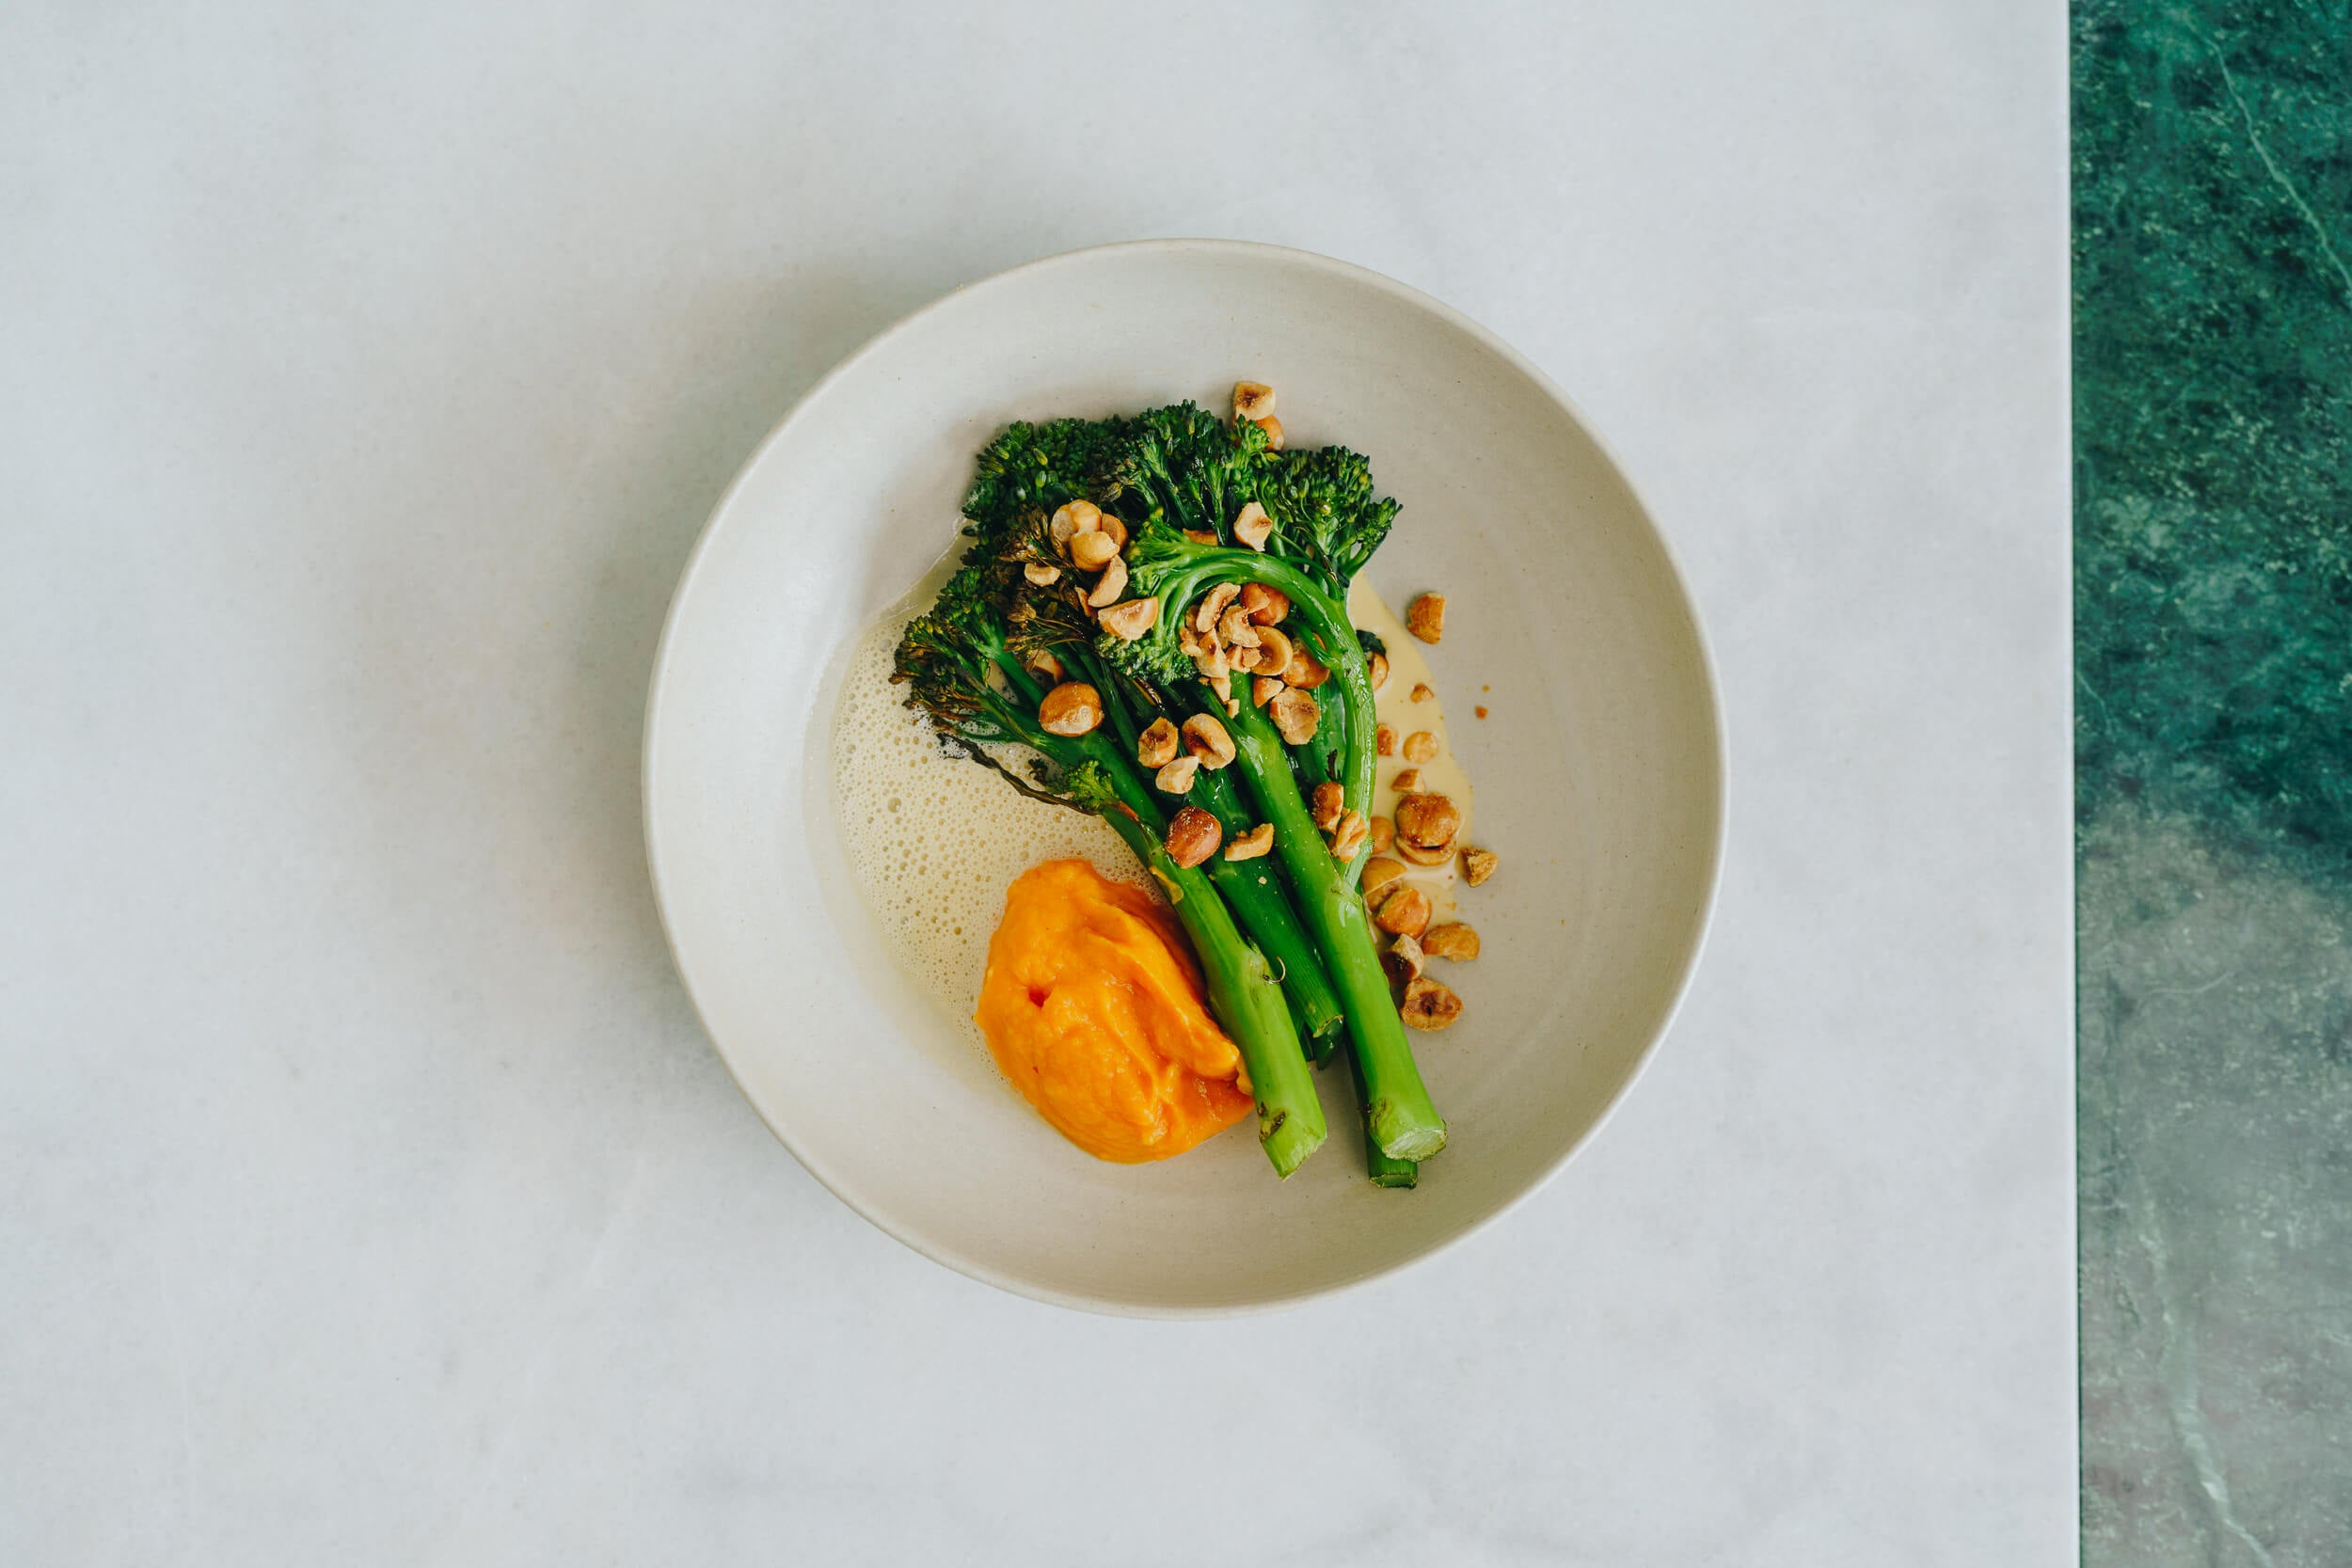 Public Space | Sprouting Broccoli | Beurre Blanc | Yam | Food | Amsterdam Cafe | Food Delivery | Restaurant | Take Away | Pickup